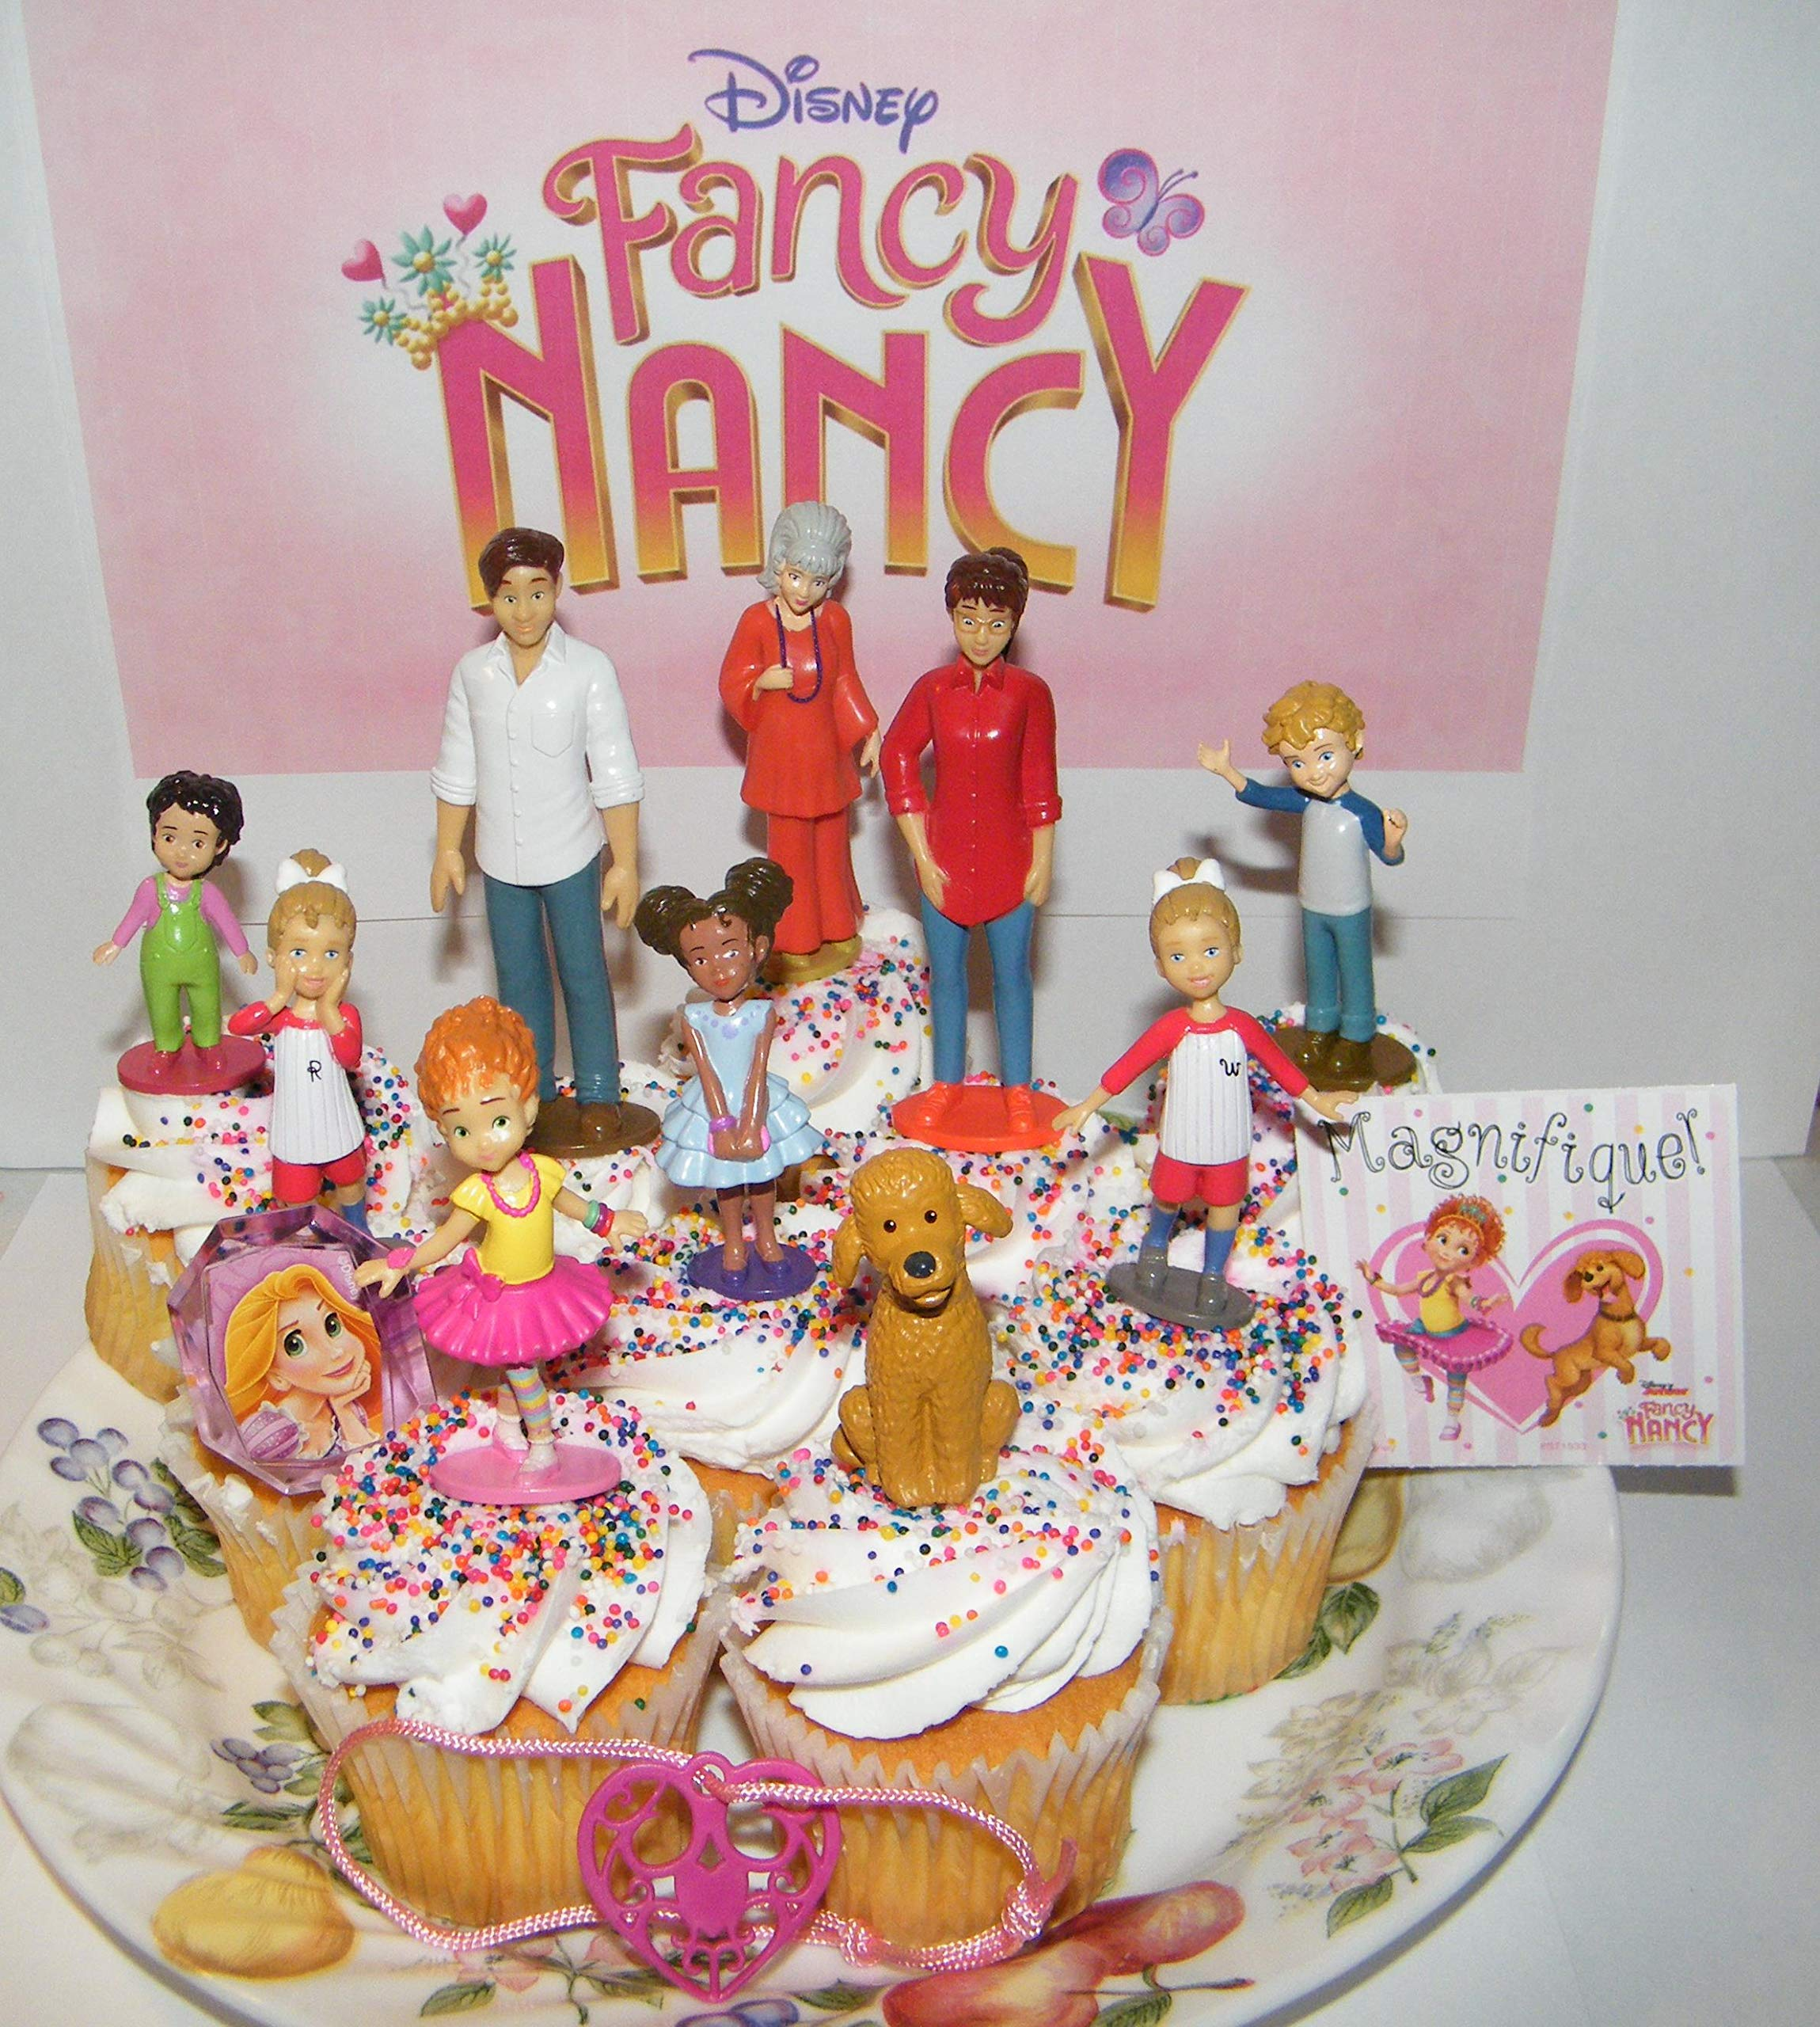 Fancy Nancy Deluxe Cake Toppers Cupcake Decorations Set of 13 with 10 Figures, Featuring Nancy and Friends, the Dog Frenchy, Fun Sticker and 2 Fashion Accessories! by Party Time